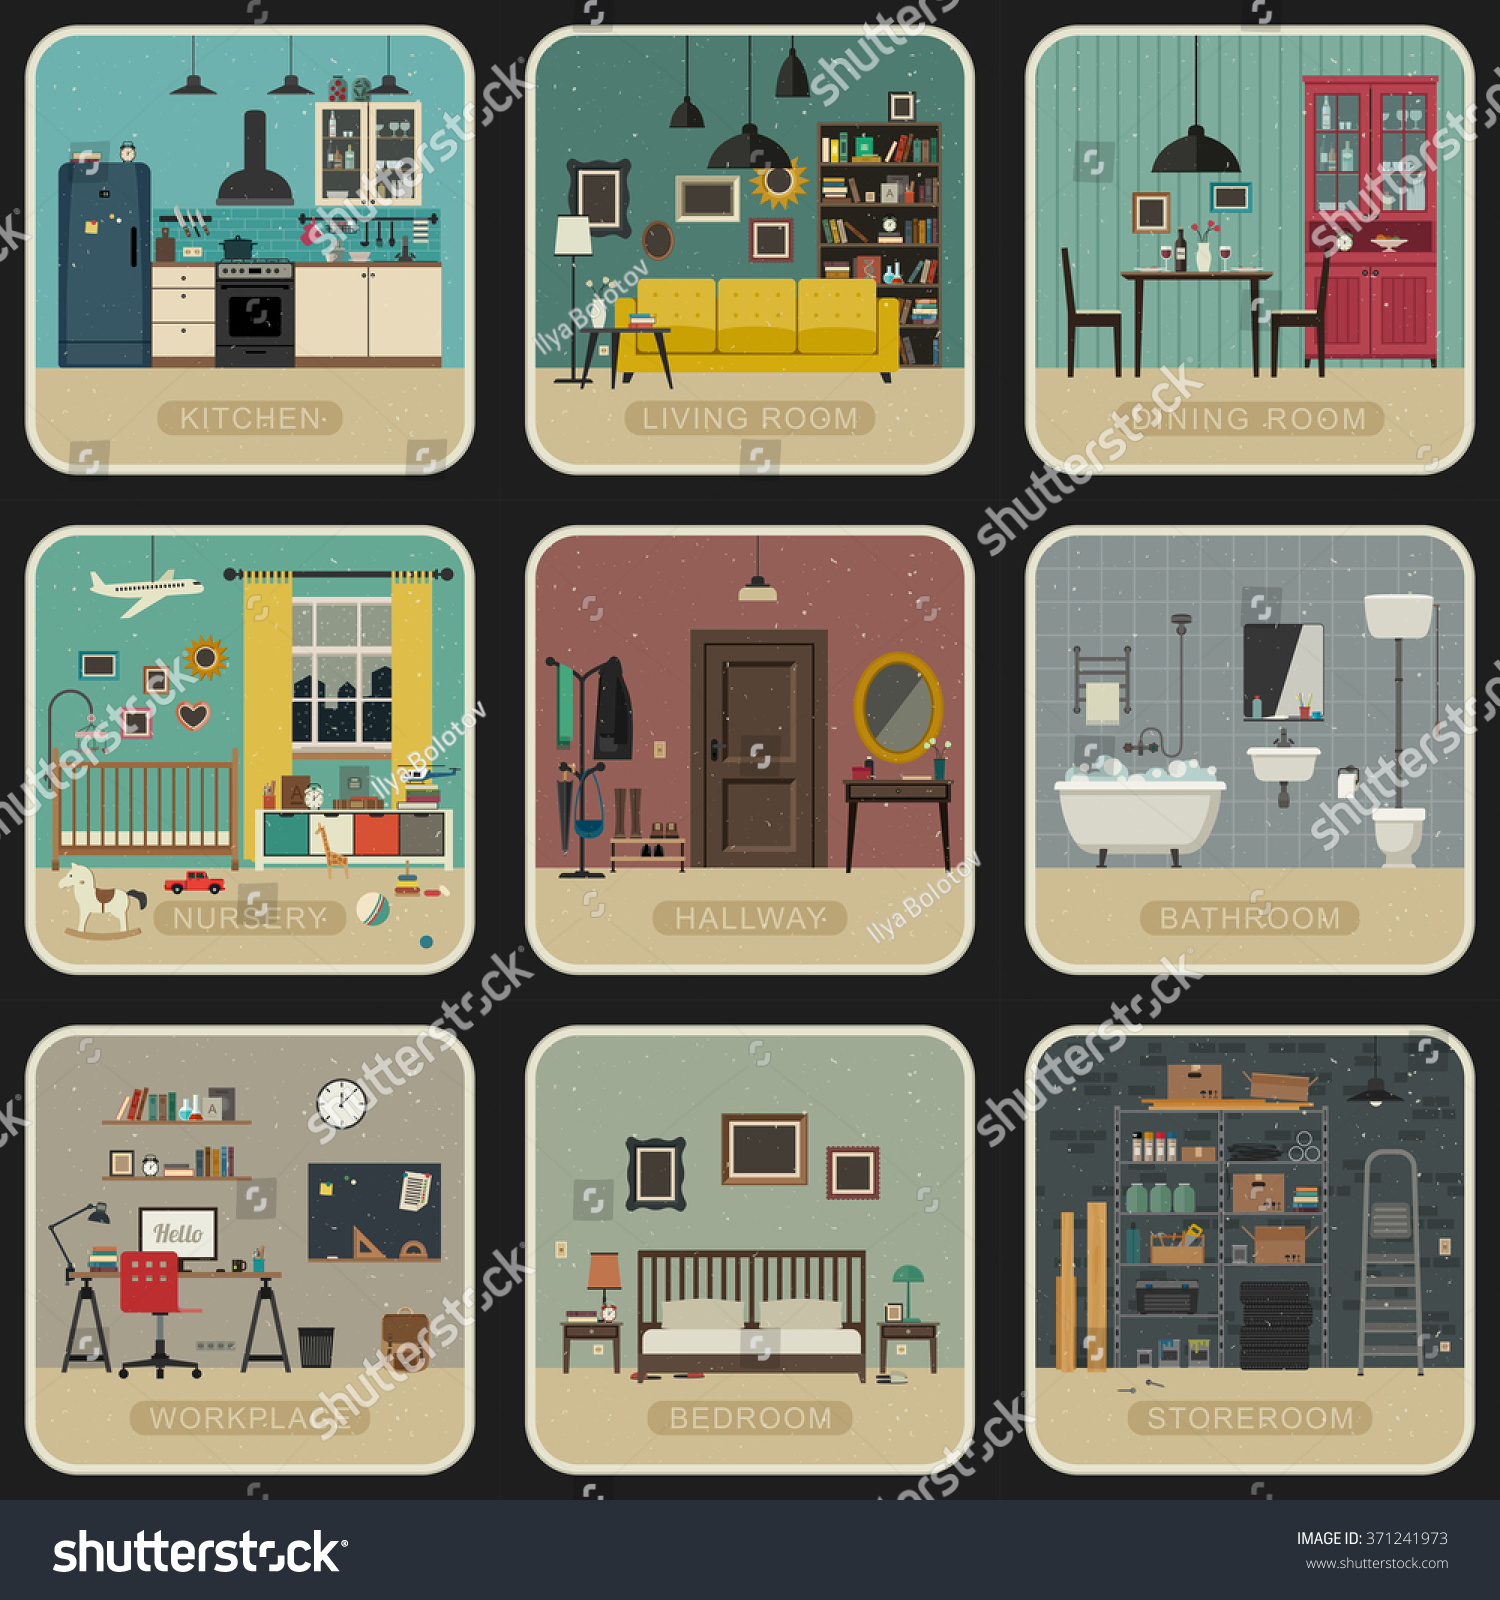 Set Of Interior Rooms In Flat Style. Vintage Illustrations Of Bathroom,  Living Room,